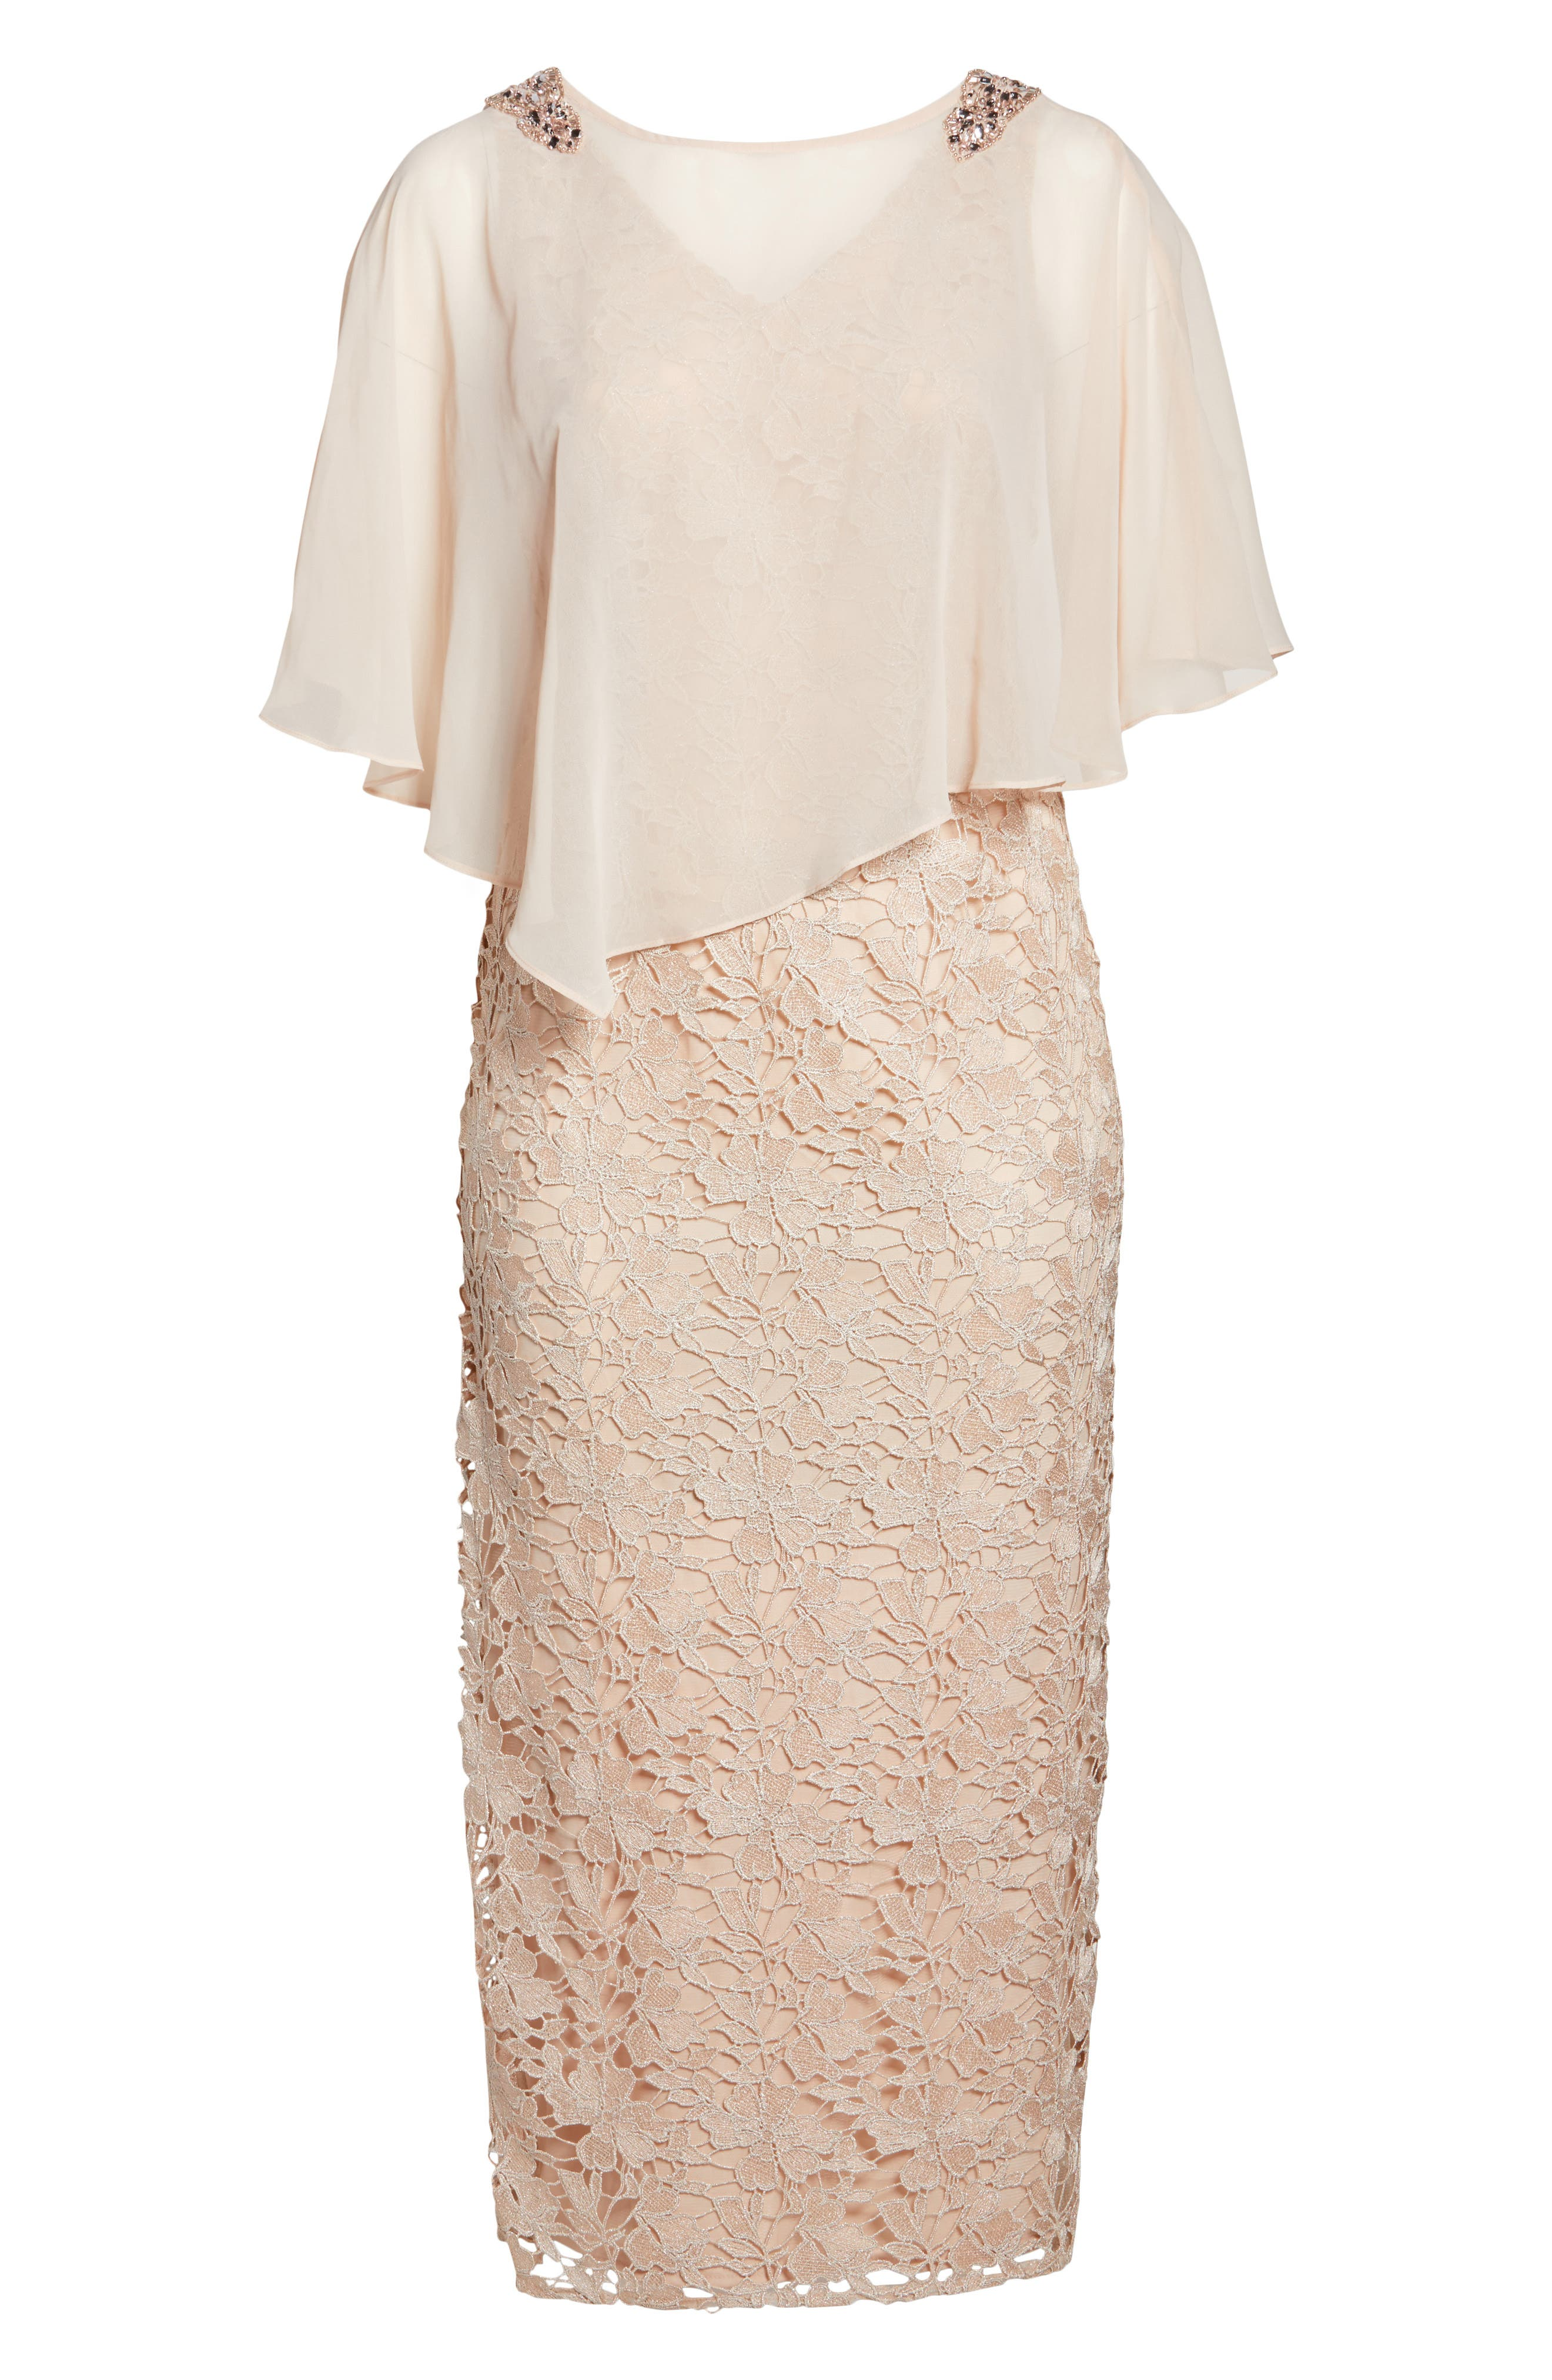 Poncho Over Floral Lace Dress,                             Alternate thumbnail 6, color,                             682